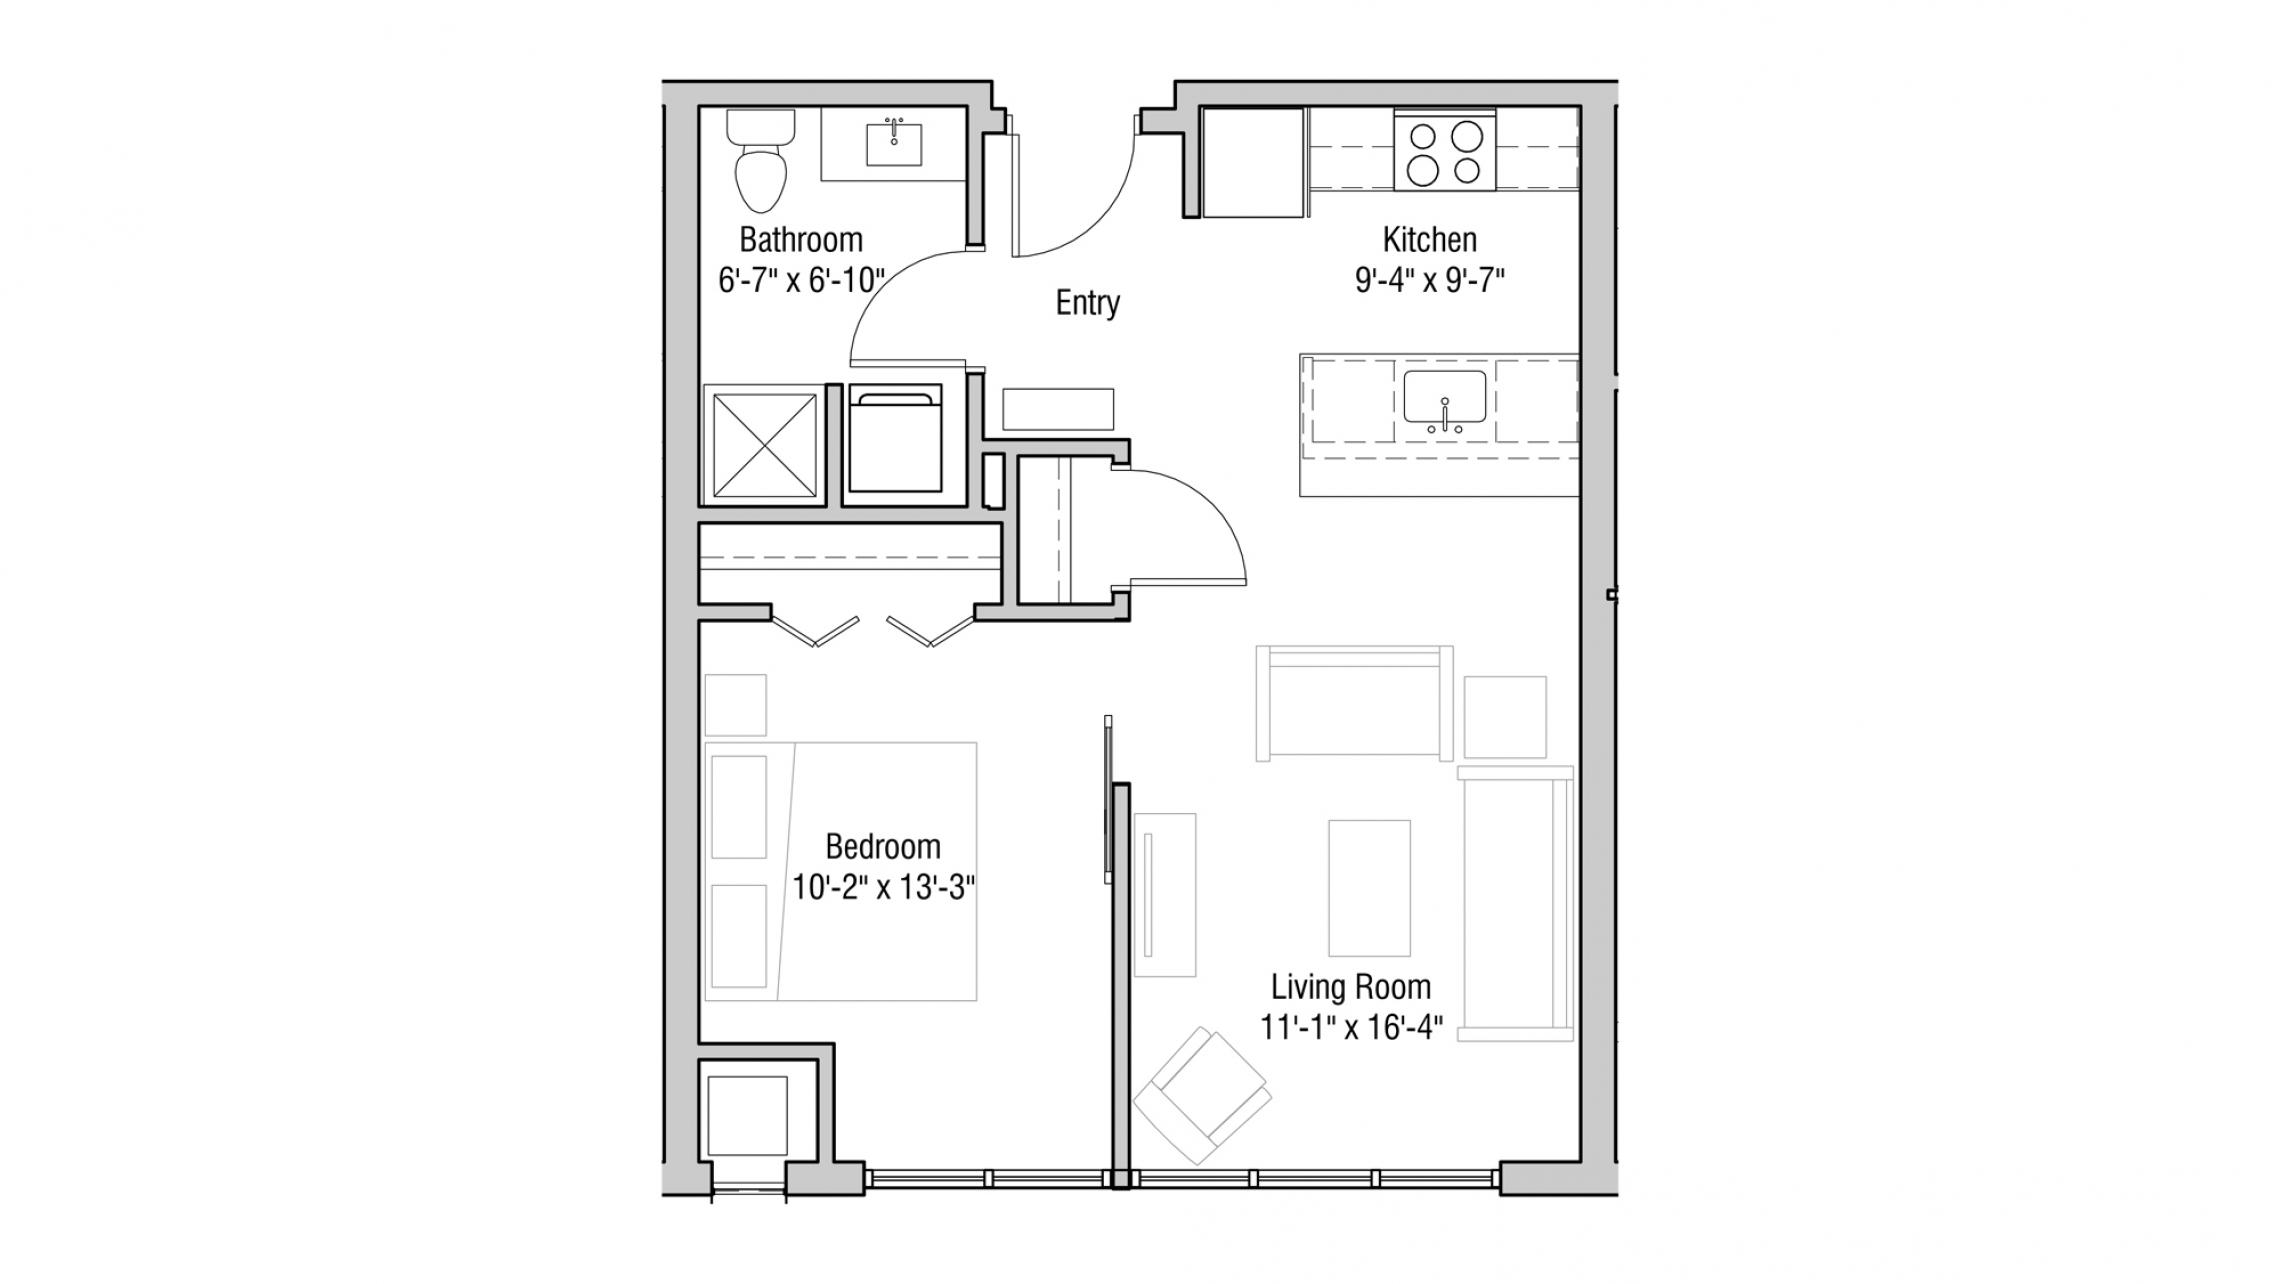 ULI Quarter Row 303 - One Bedroom, One Bathroom